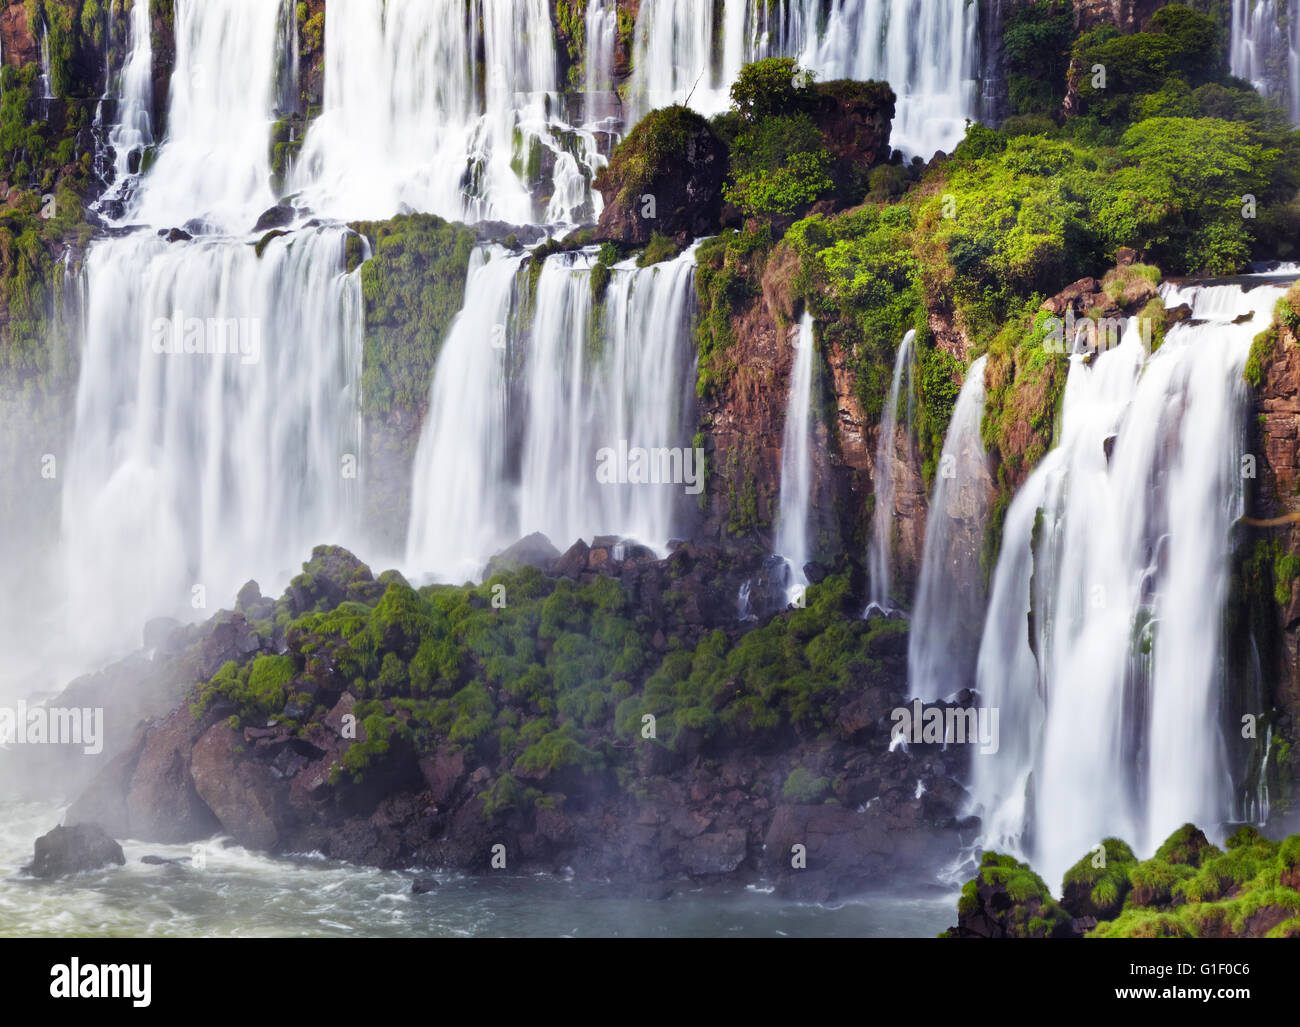 Iguasu Falls, the largest series of waterfalls of the world, located at the Brazilian and Argentinian border View - Stock Image